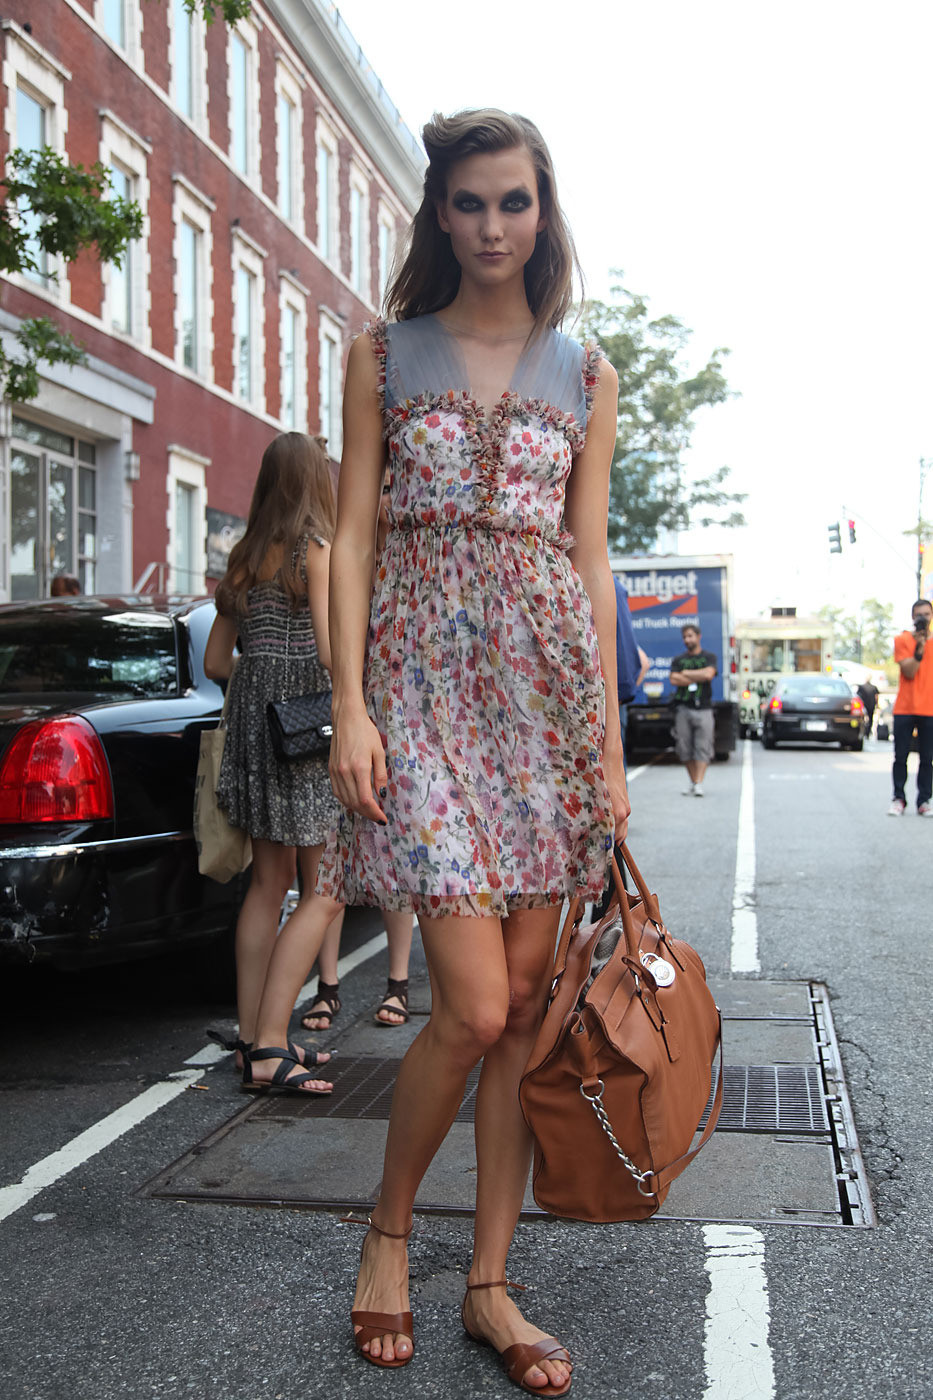 NYFW Street Style: Karlie Kloss in Florals & Tan Accessories